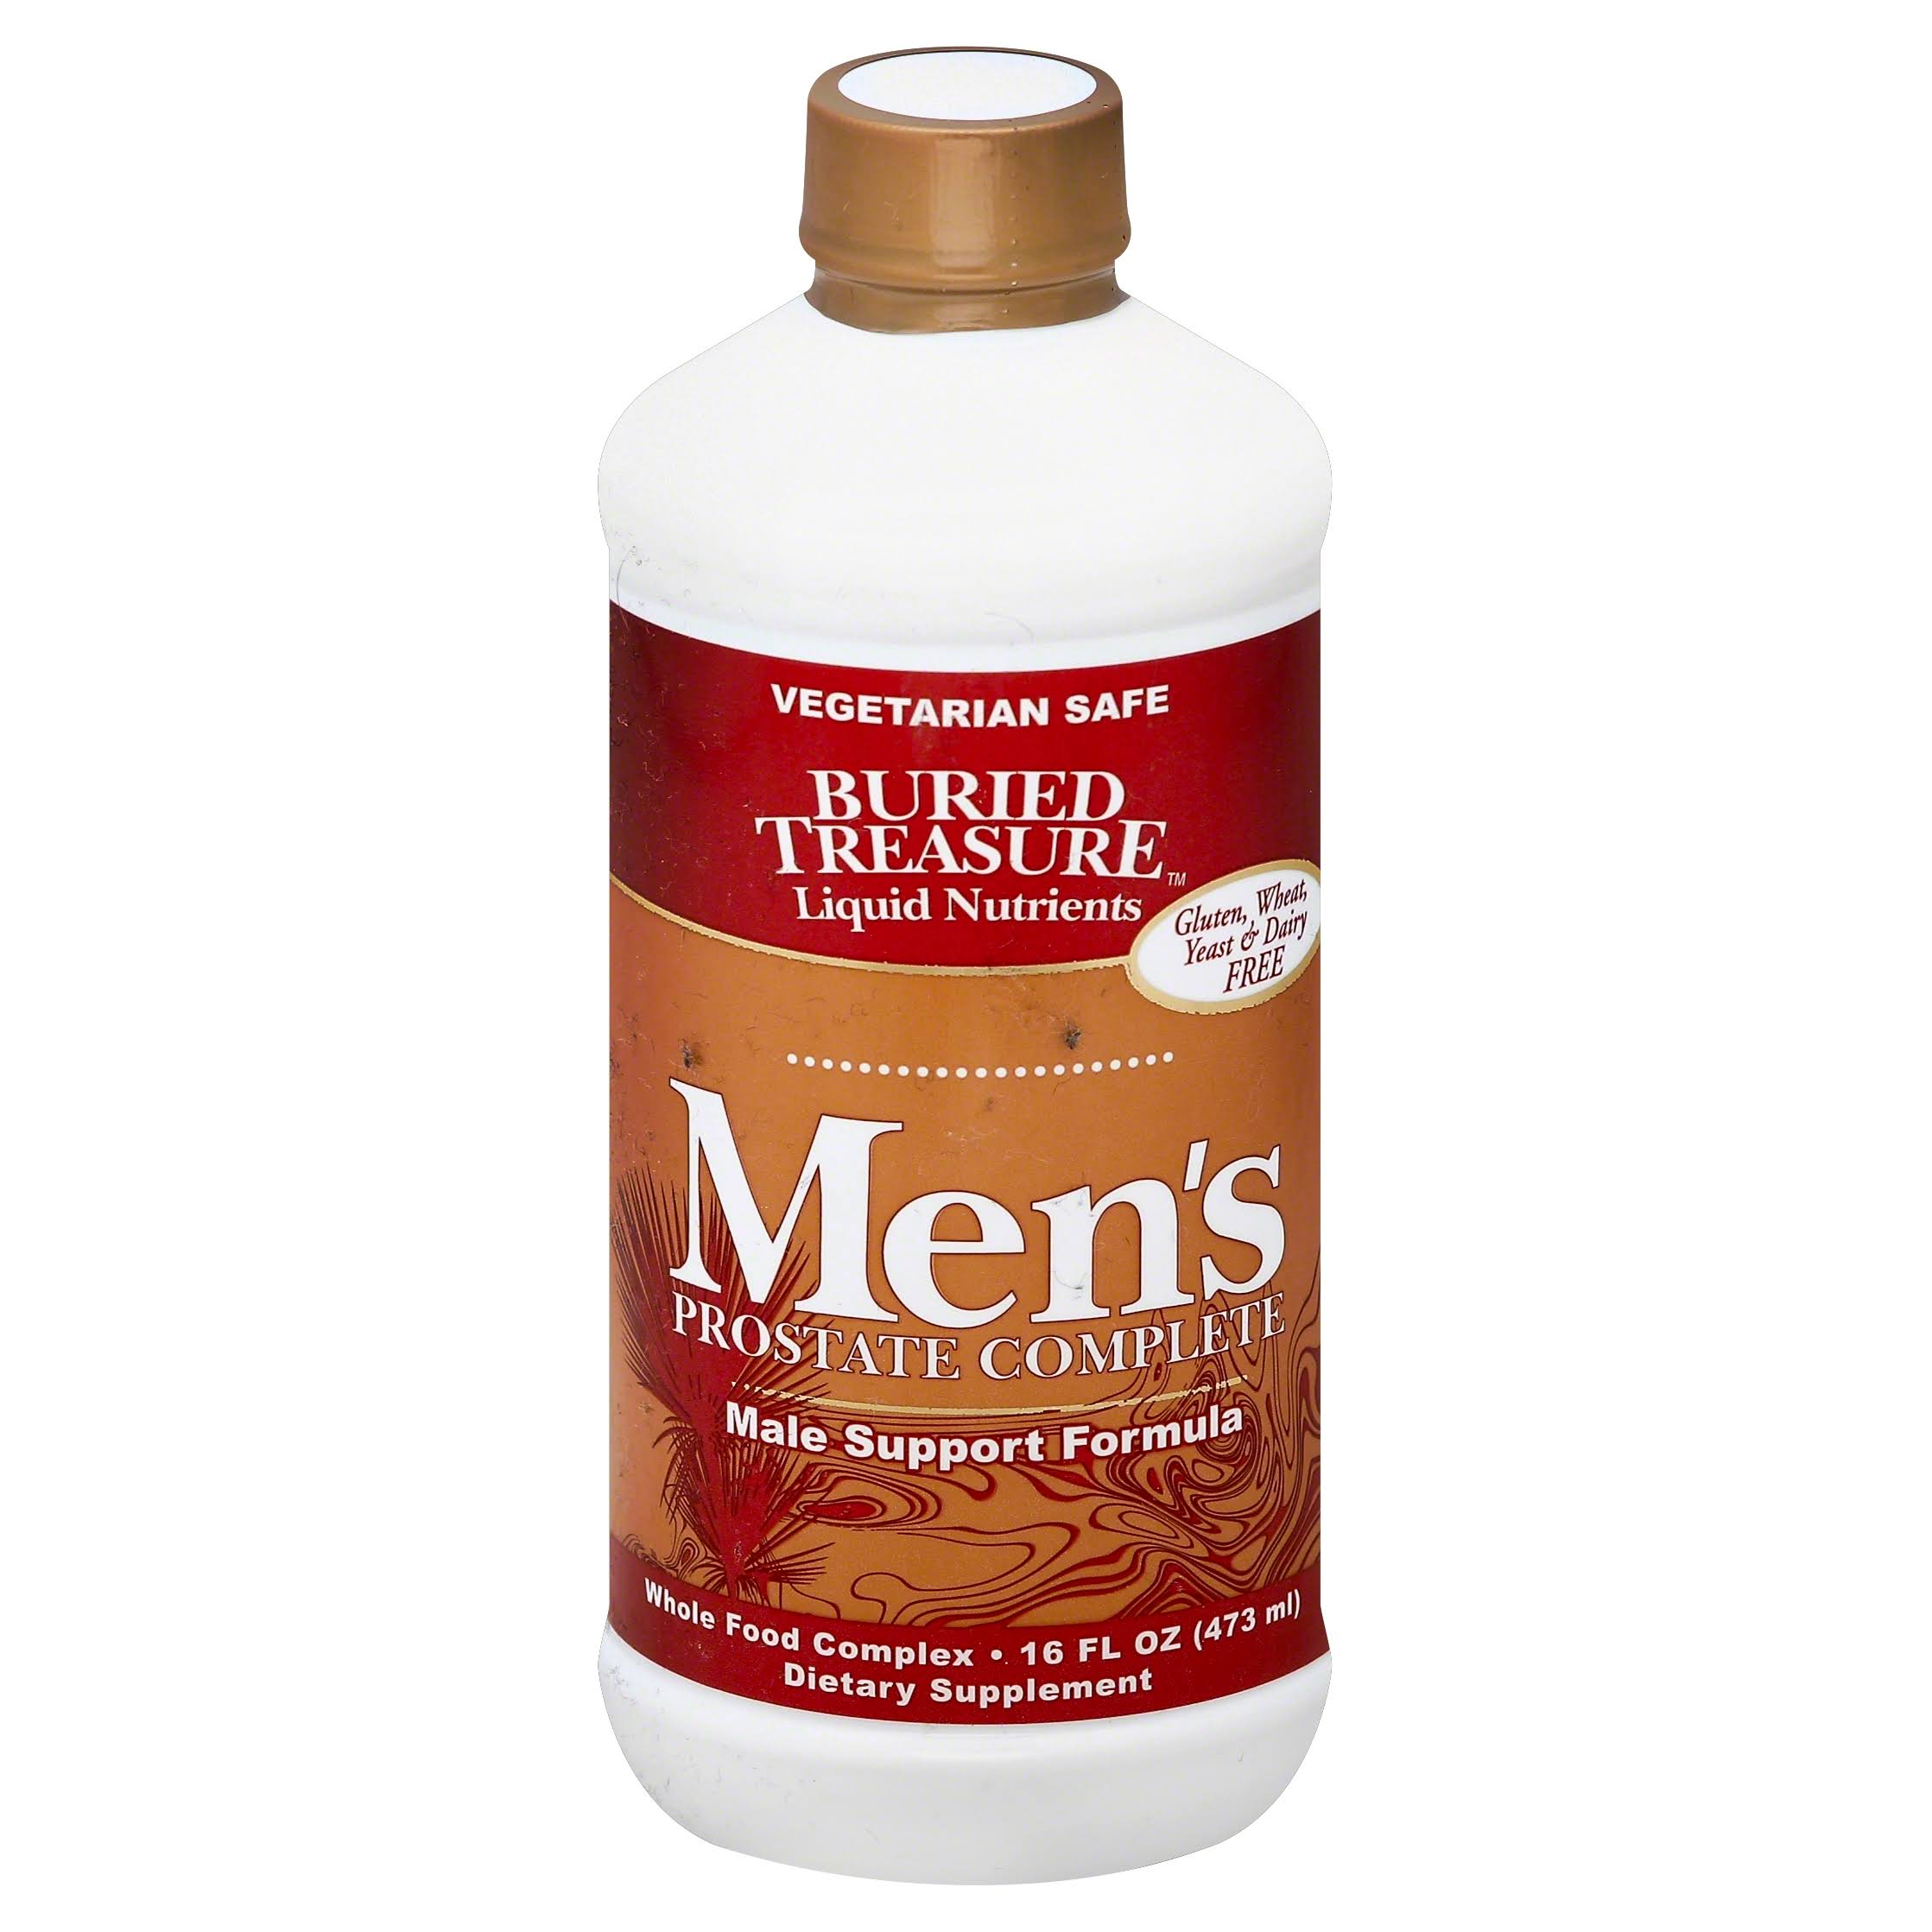 Buried Treasure Mens Prostate Complete Male Support Formula - 16oz